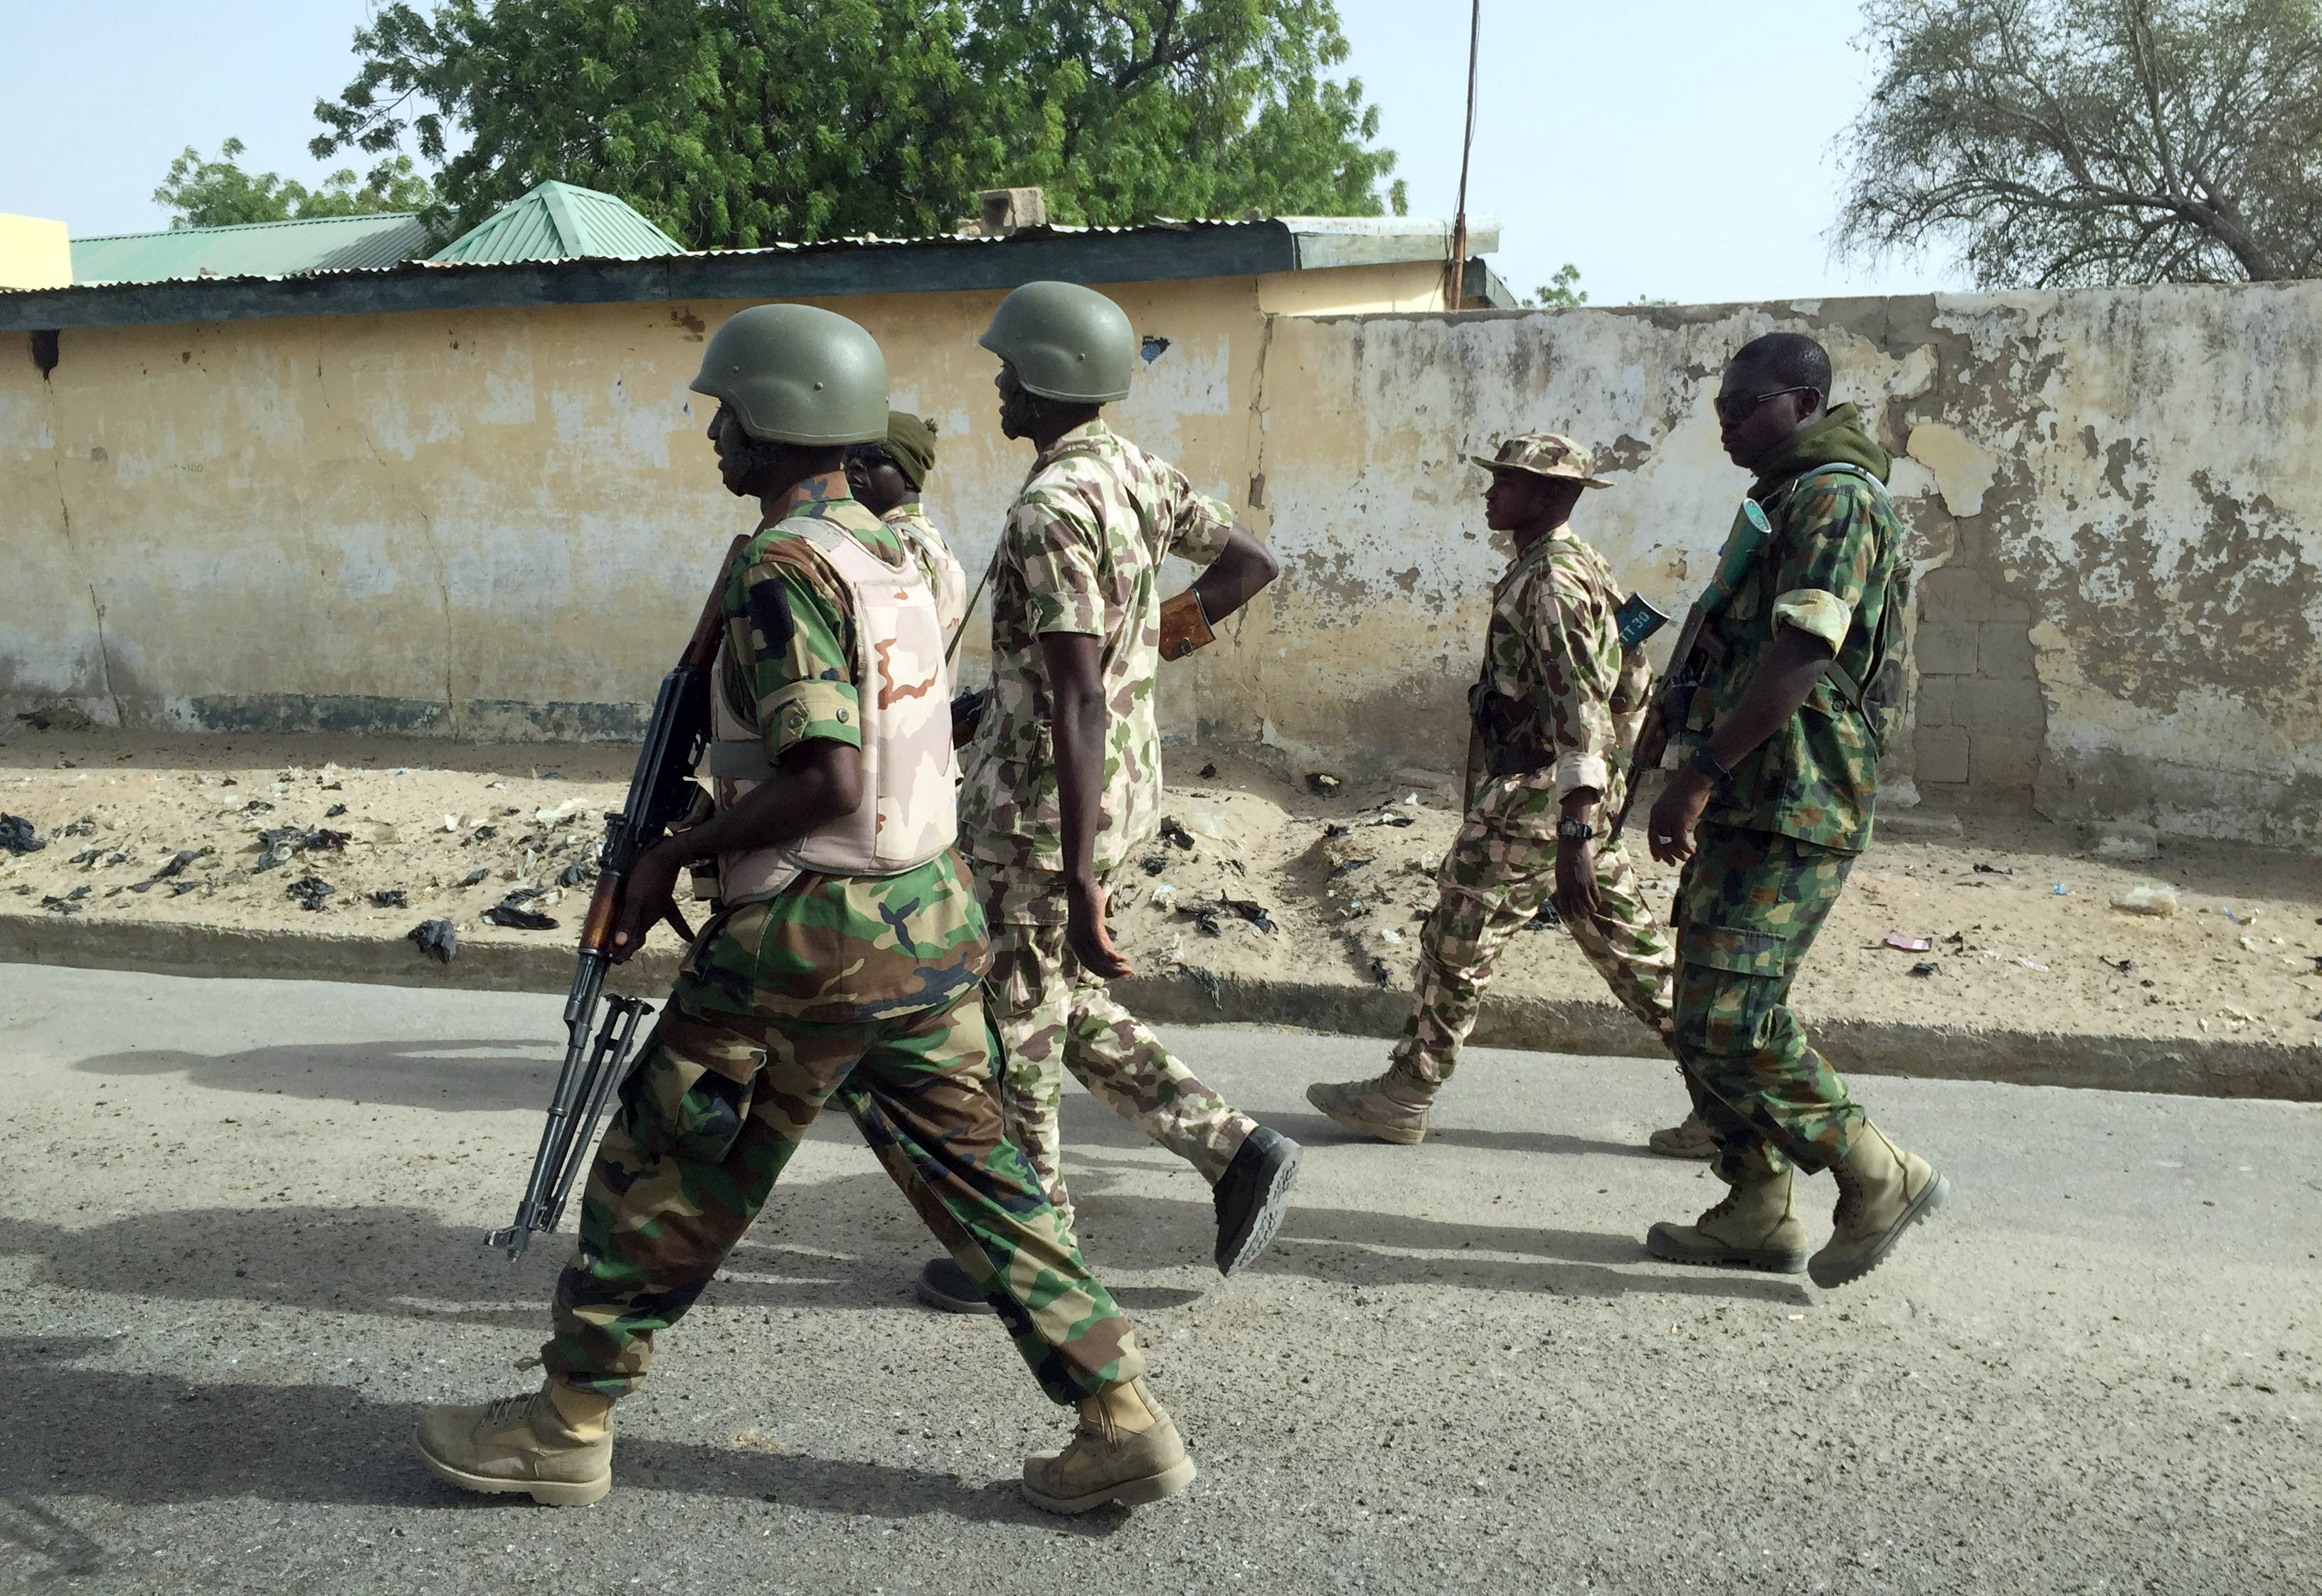 "A handout photo released by the Nigerian Army shows Nigerian soldiers in Goniri on March 16, 2015. Nigeria's military on March 16 said that it had cleared Boko Haram from the northeastern state of Yobe, after reclaiming the town of Goniri. AFP PHOTO / NIGERIAN ARMY  -- RESTRICTED TO EDITORIAL USE - NO ADVERTISING CAMPAIGN - NO MARKETING - MANDATORY CREDIT  ""AFP PHOTO / NIGERIAN ARMY "" - DISTRIBUTED AS A SERVICE TO CLIENTS --"